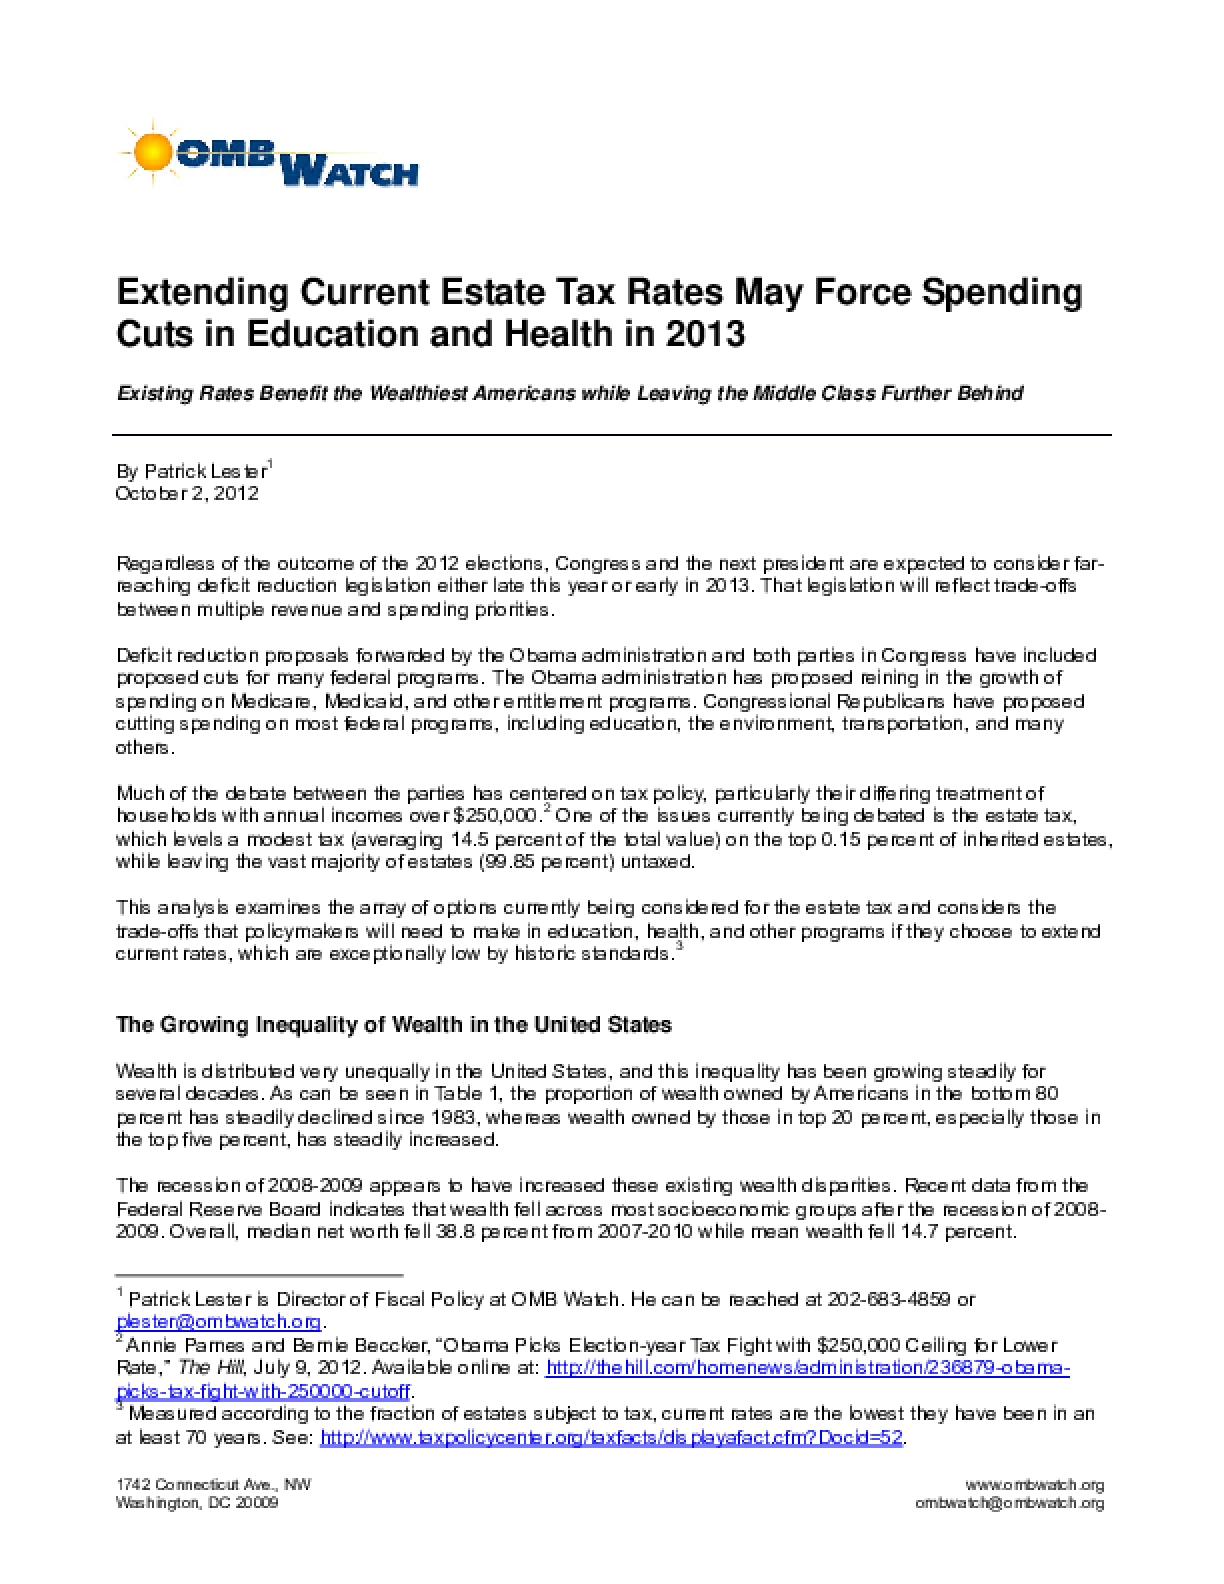 Extending Current Estate Tax Rates May Force Spending Cuts in Education and Health in 2013